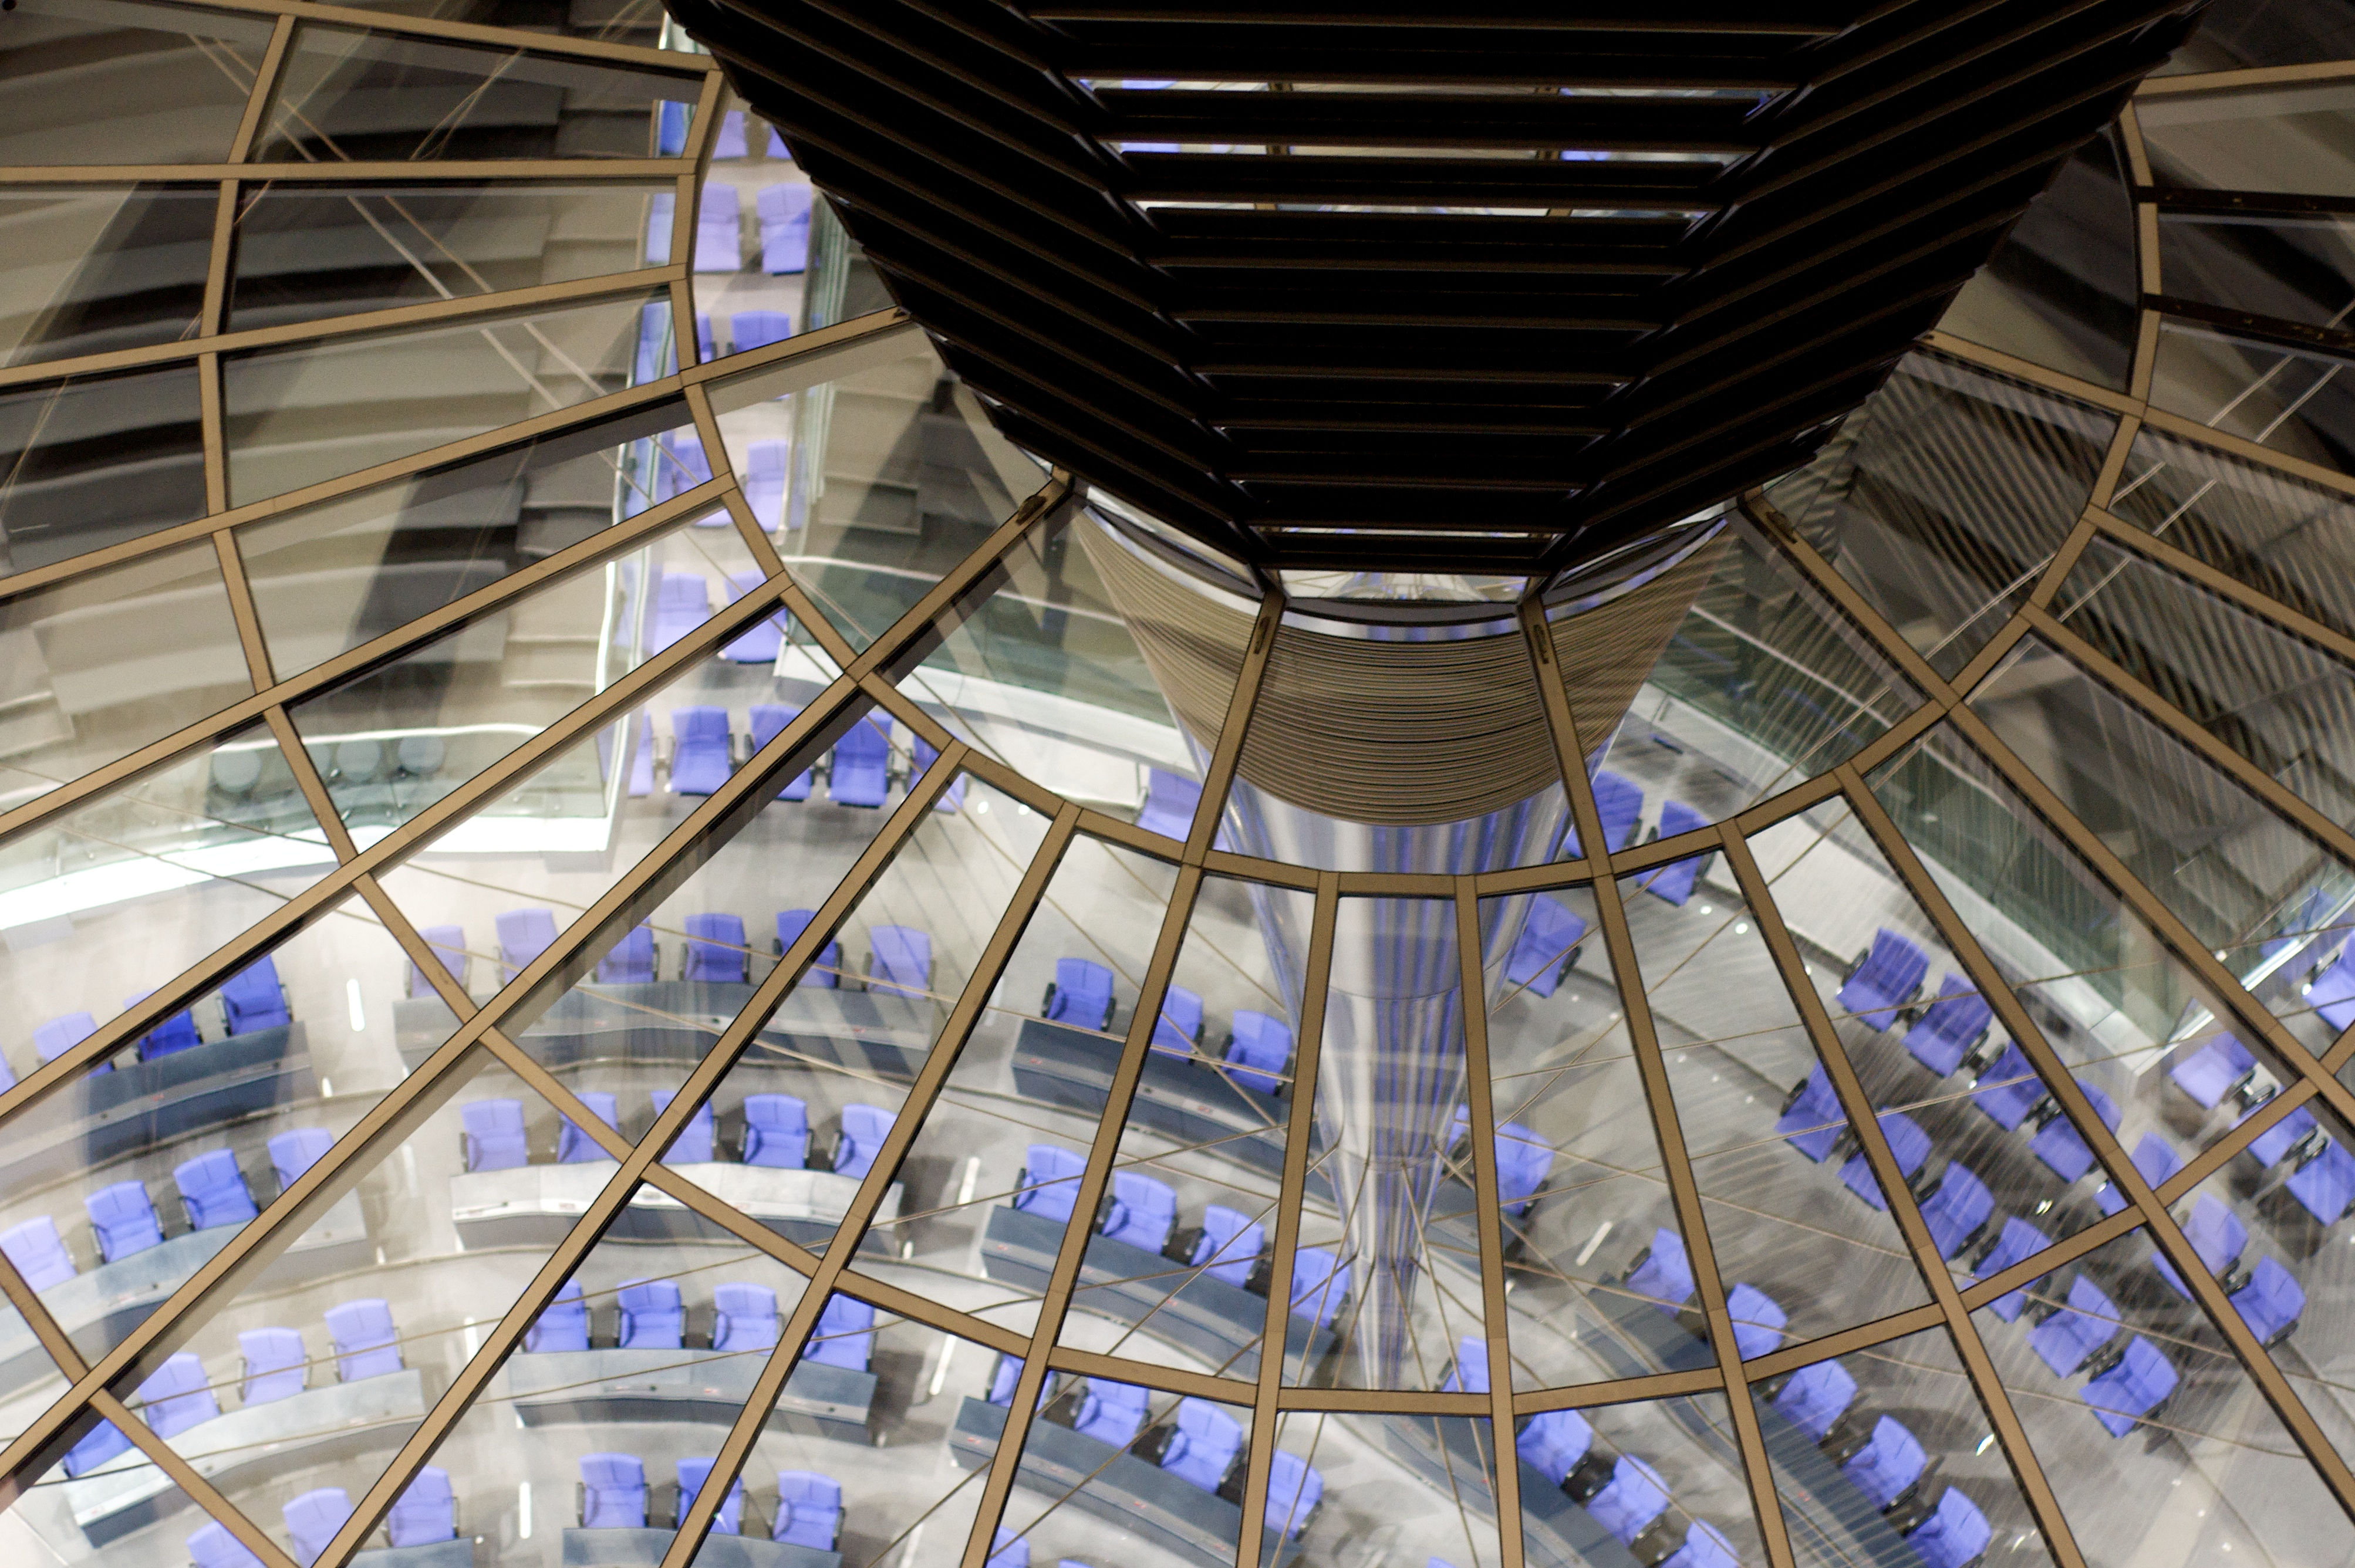 View of the Plenary Chamber of the Bundestag from the Dome of the Reichstag. Reconstruction design by Norman Foster